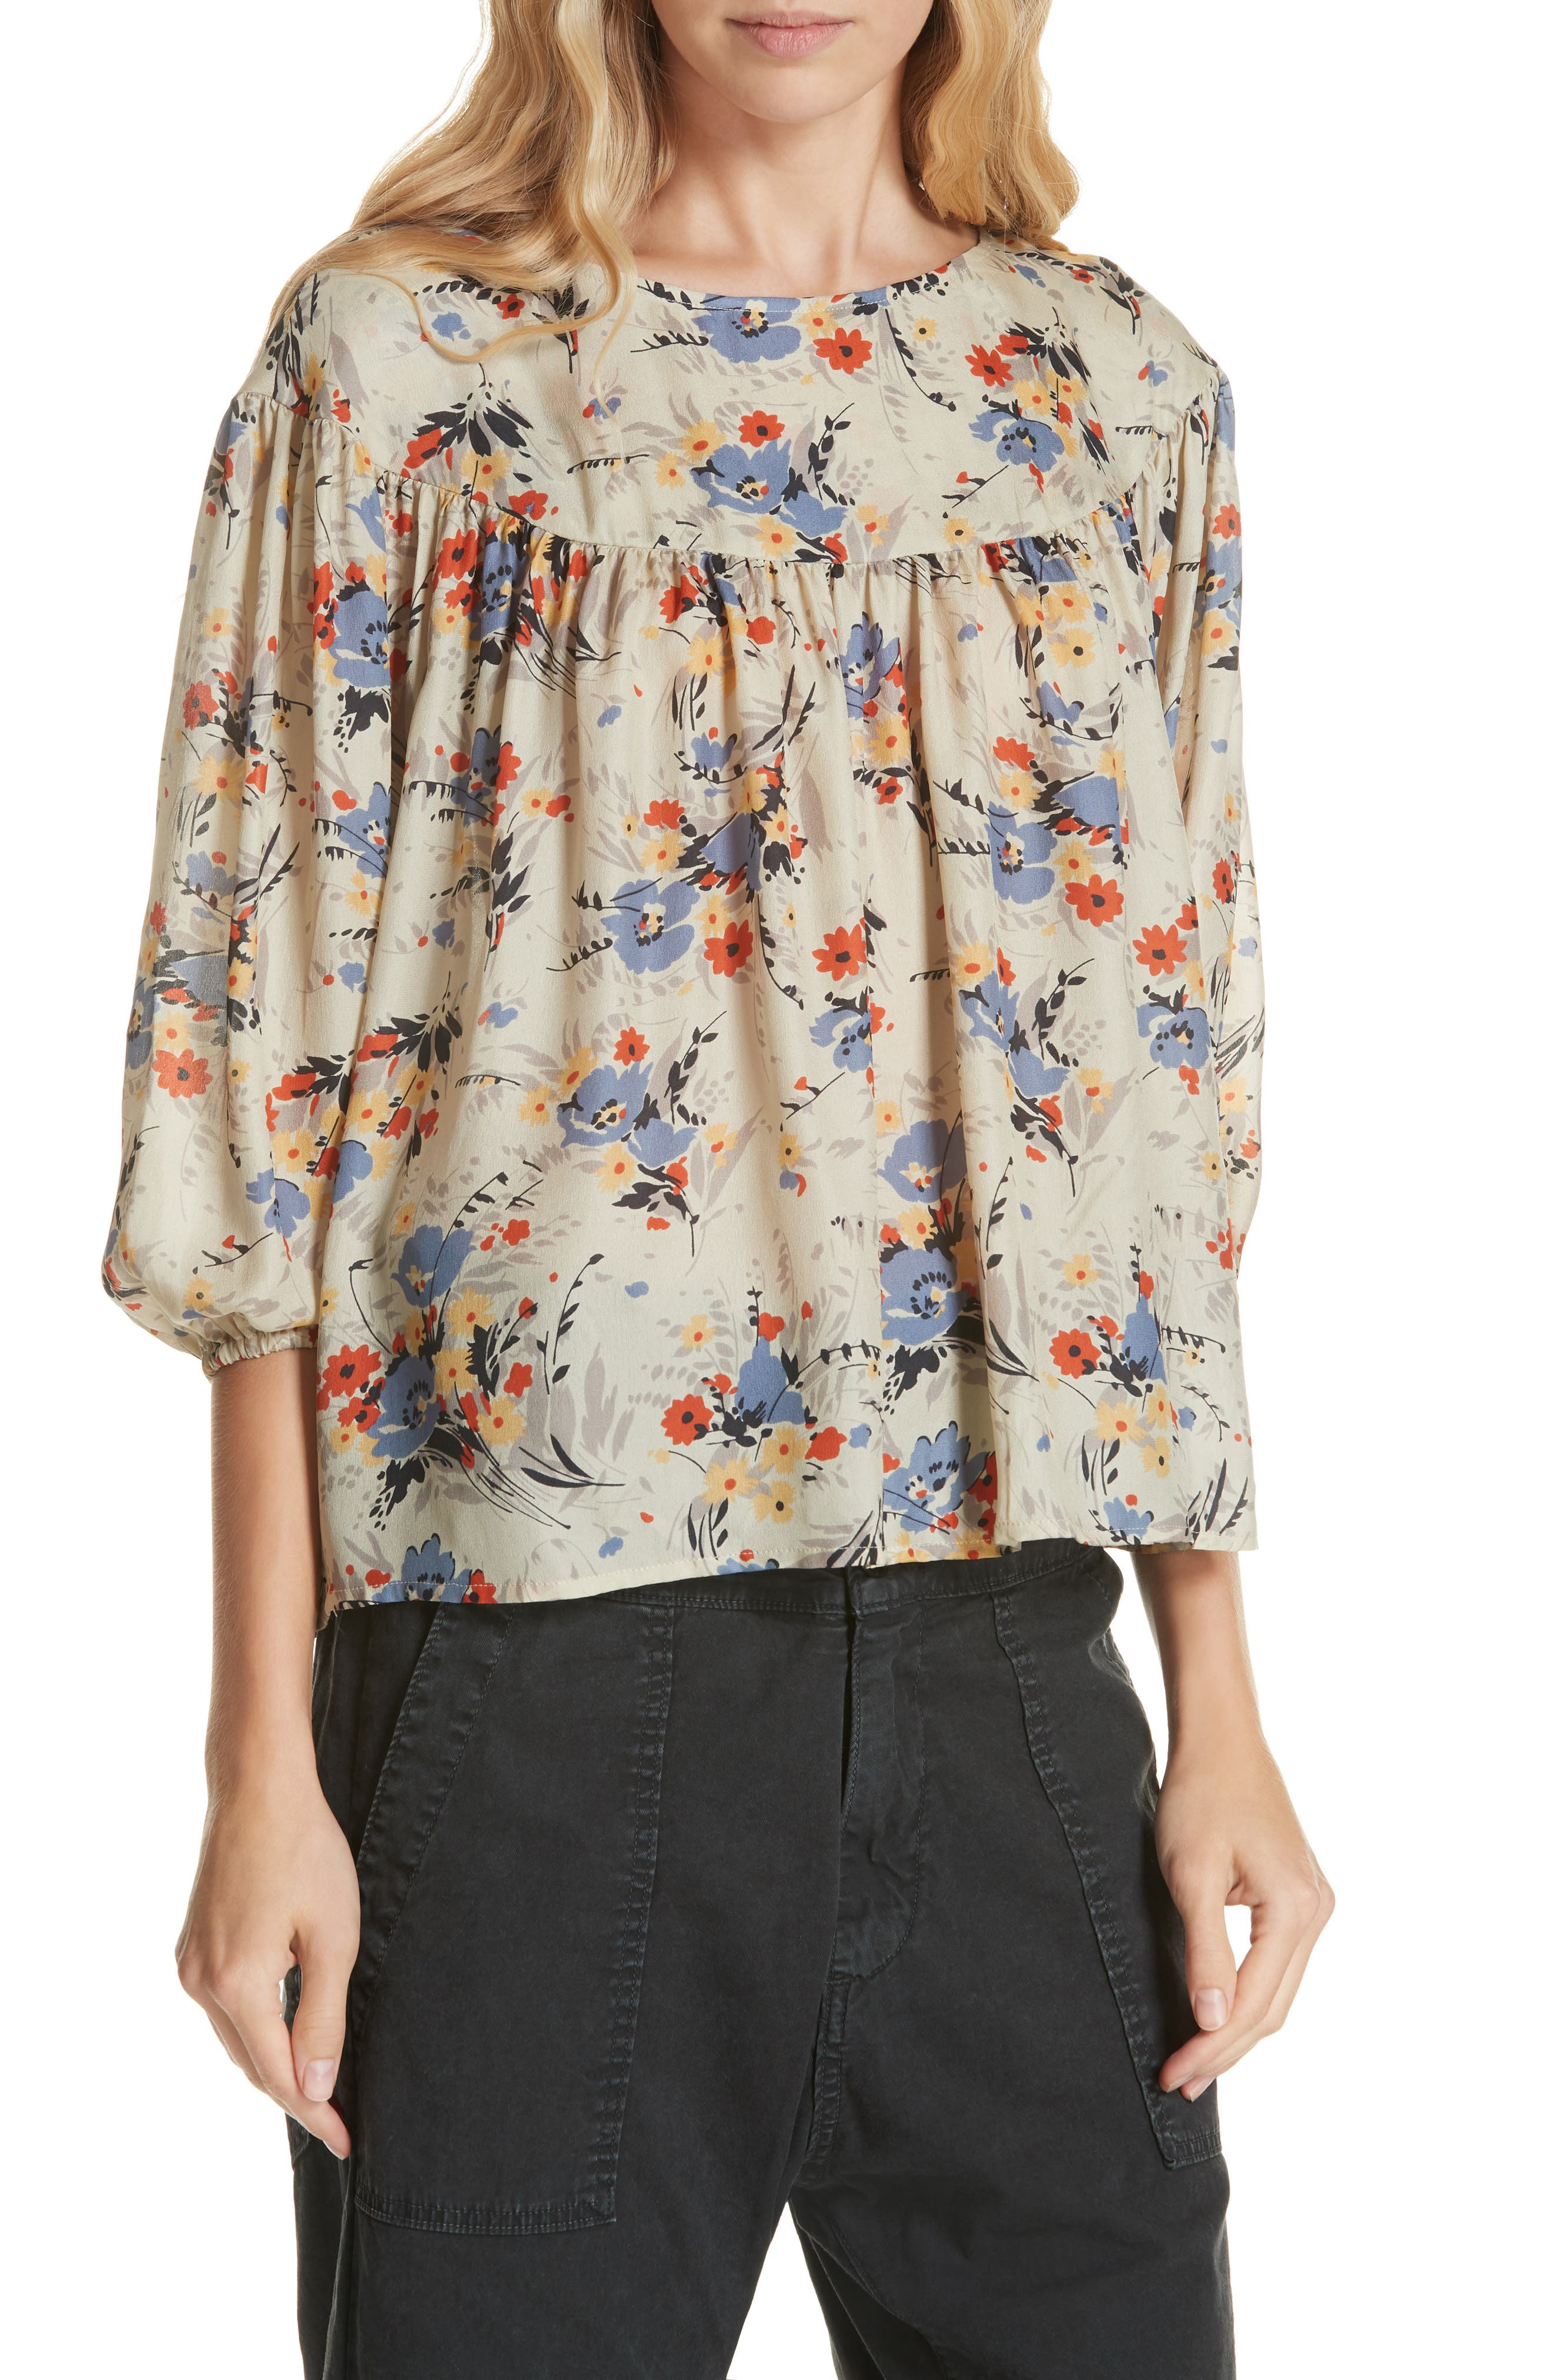 Duskfall Silk Blouse,                             Main thumbnail 1, color,                             WOODLAND FLORAL